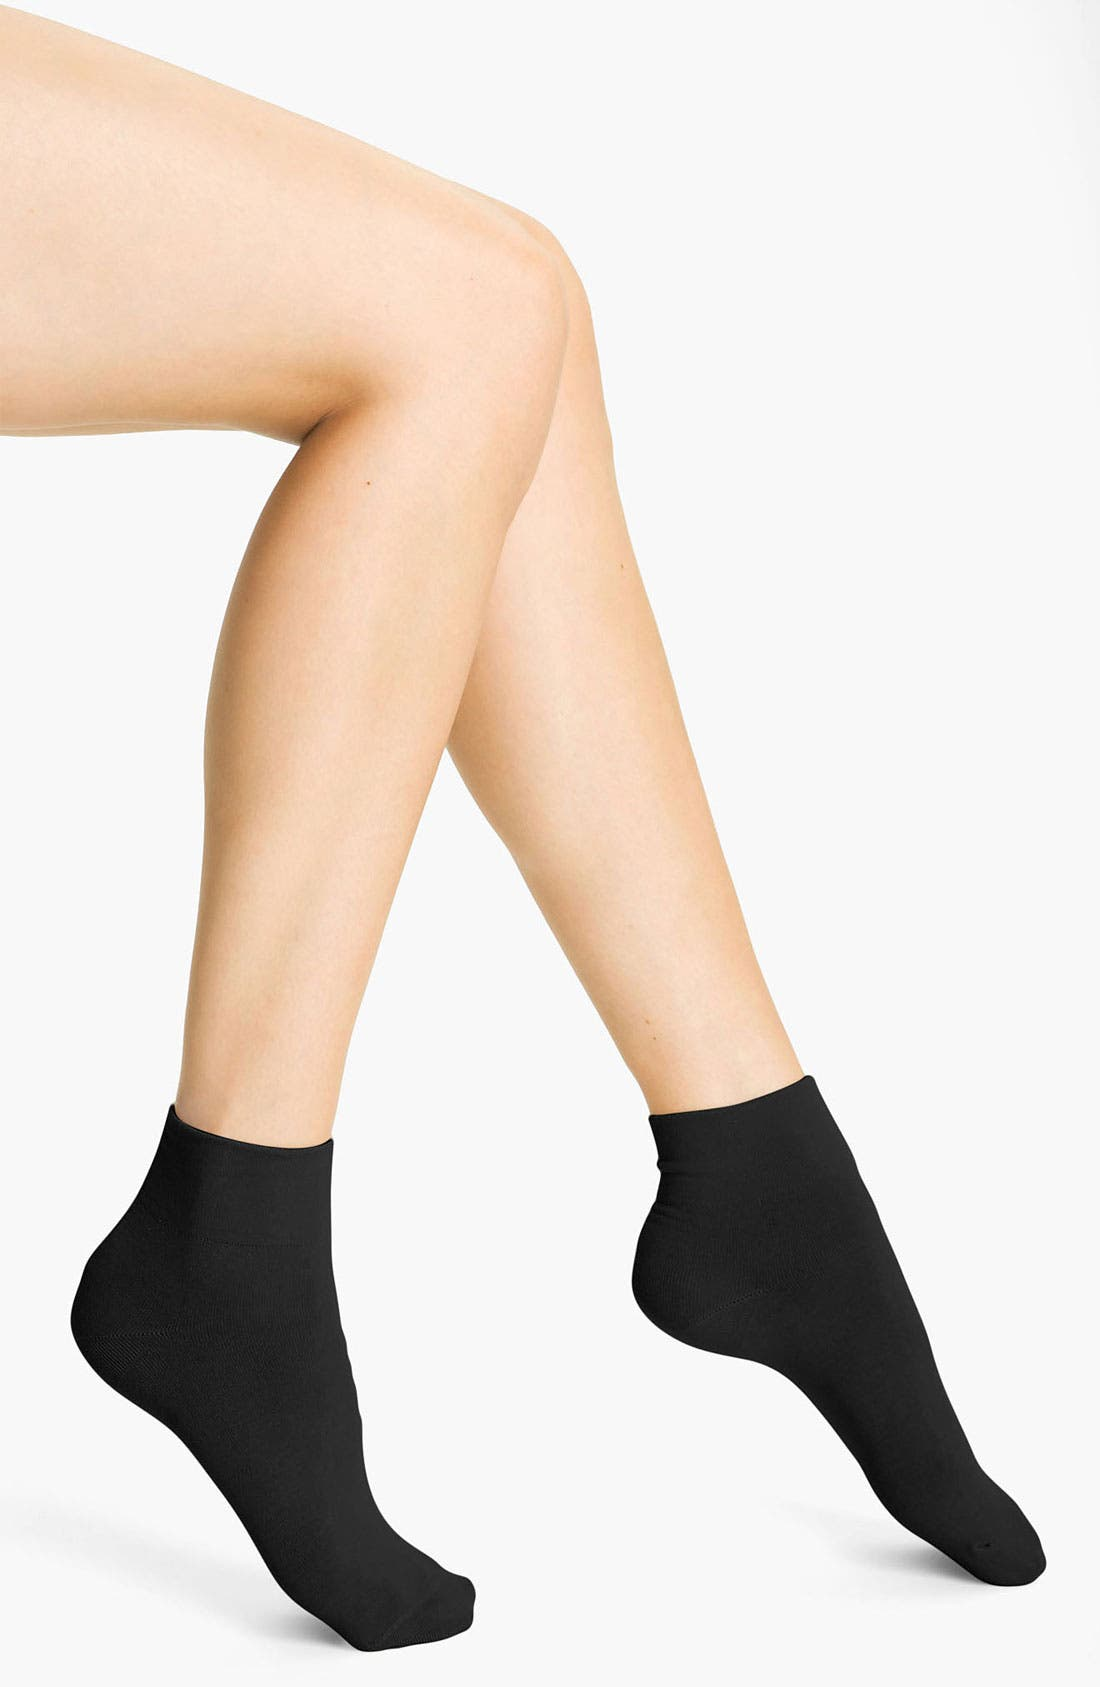 Hue 'Cotton Body' Socks (3 for $18)